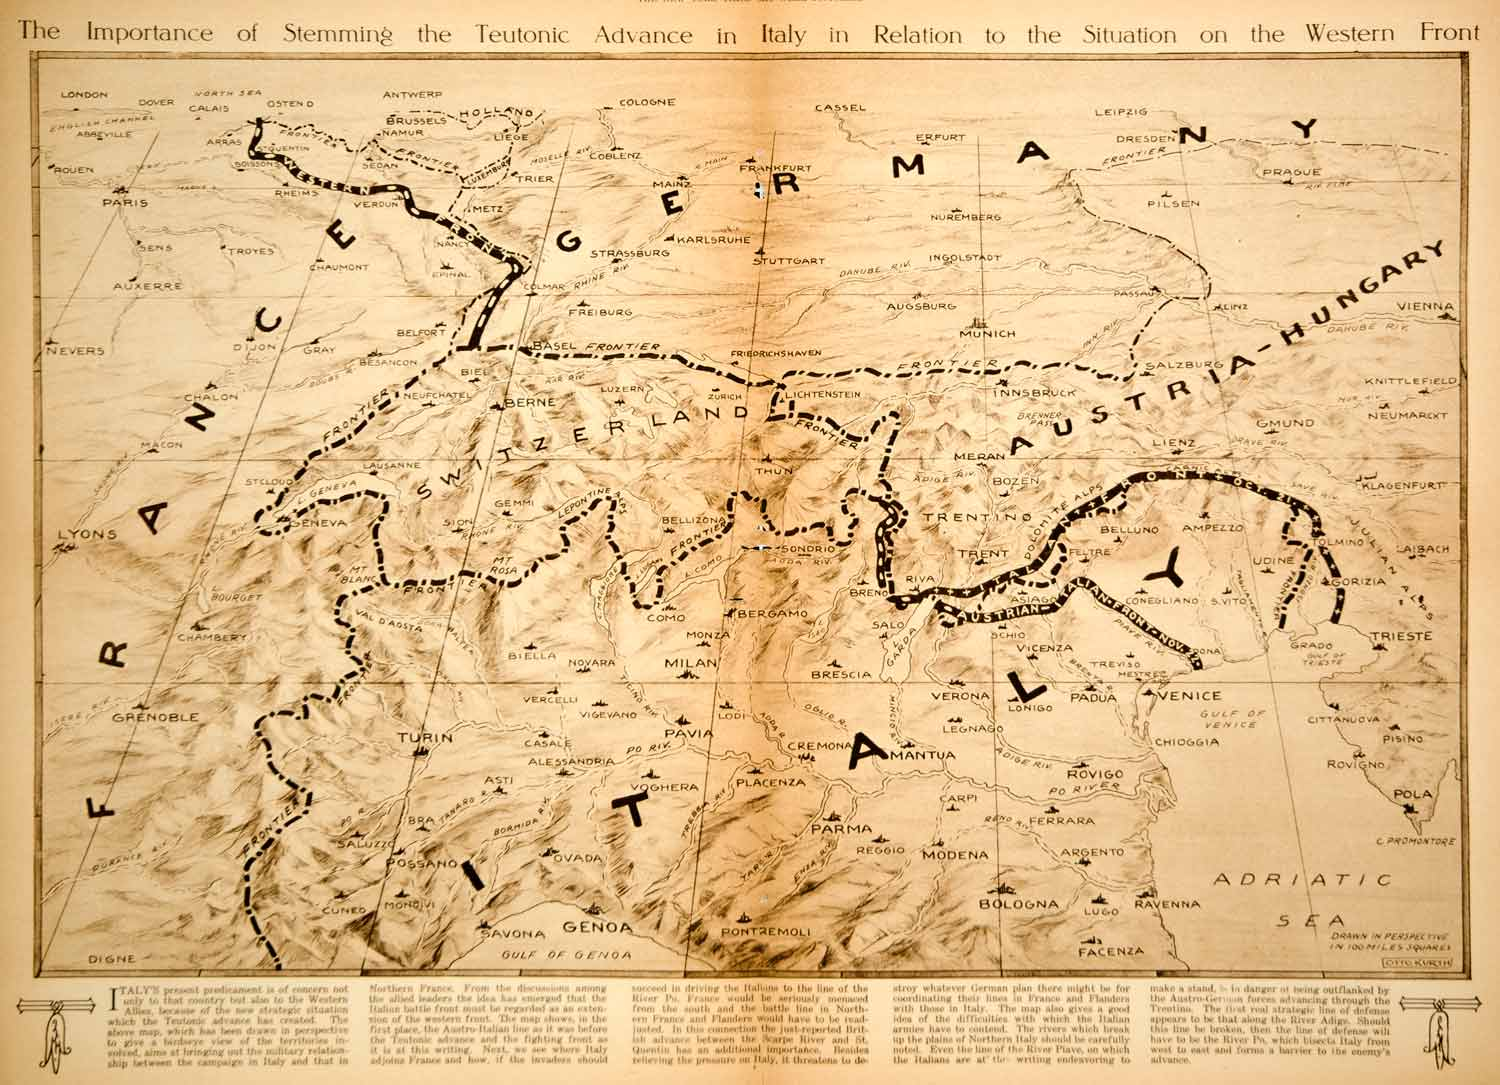 1917 rotogravure map world war i italy battle front france germany 1917 rotogravure map world war i italy battle front france germany austria yny3 gumiabroncs Image collections